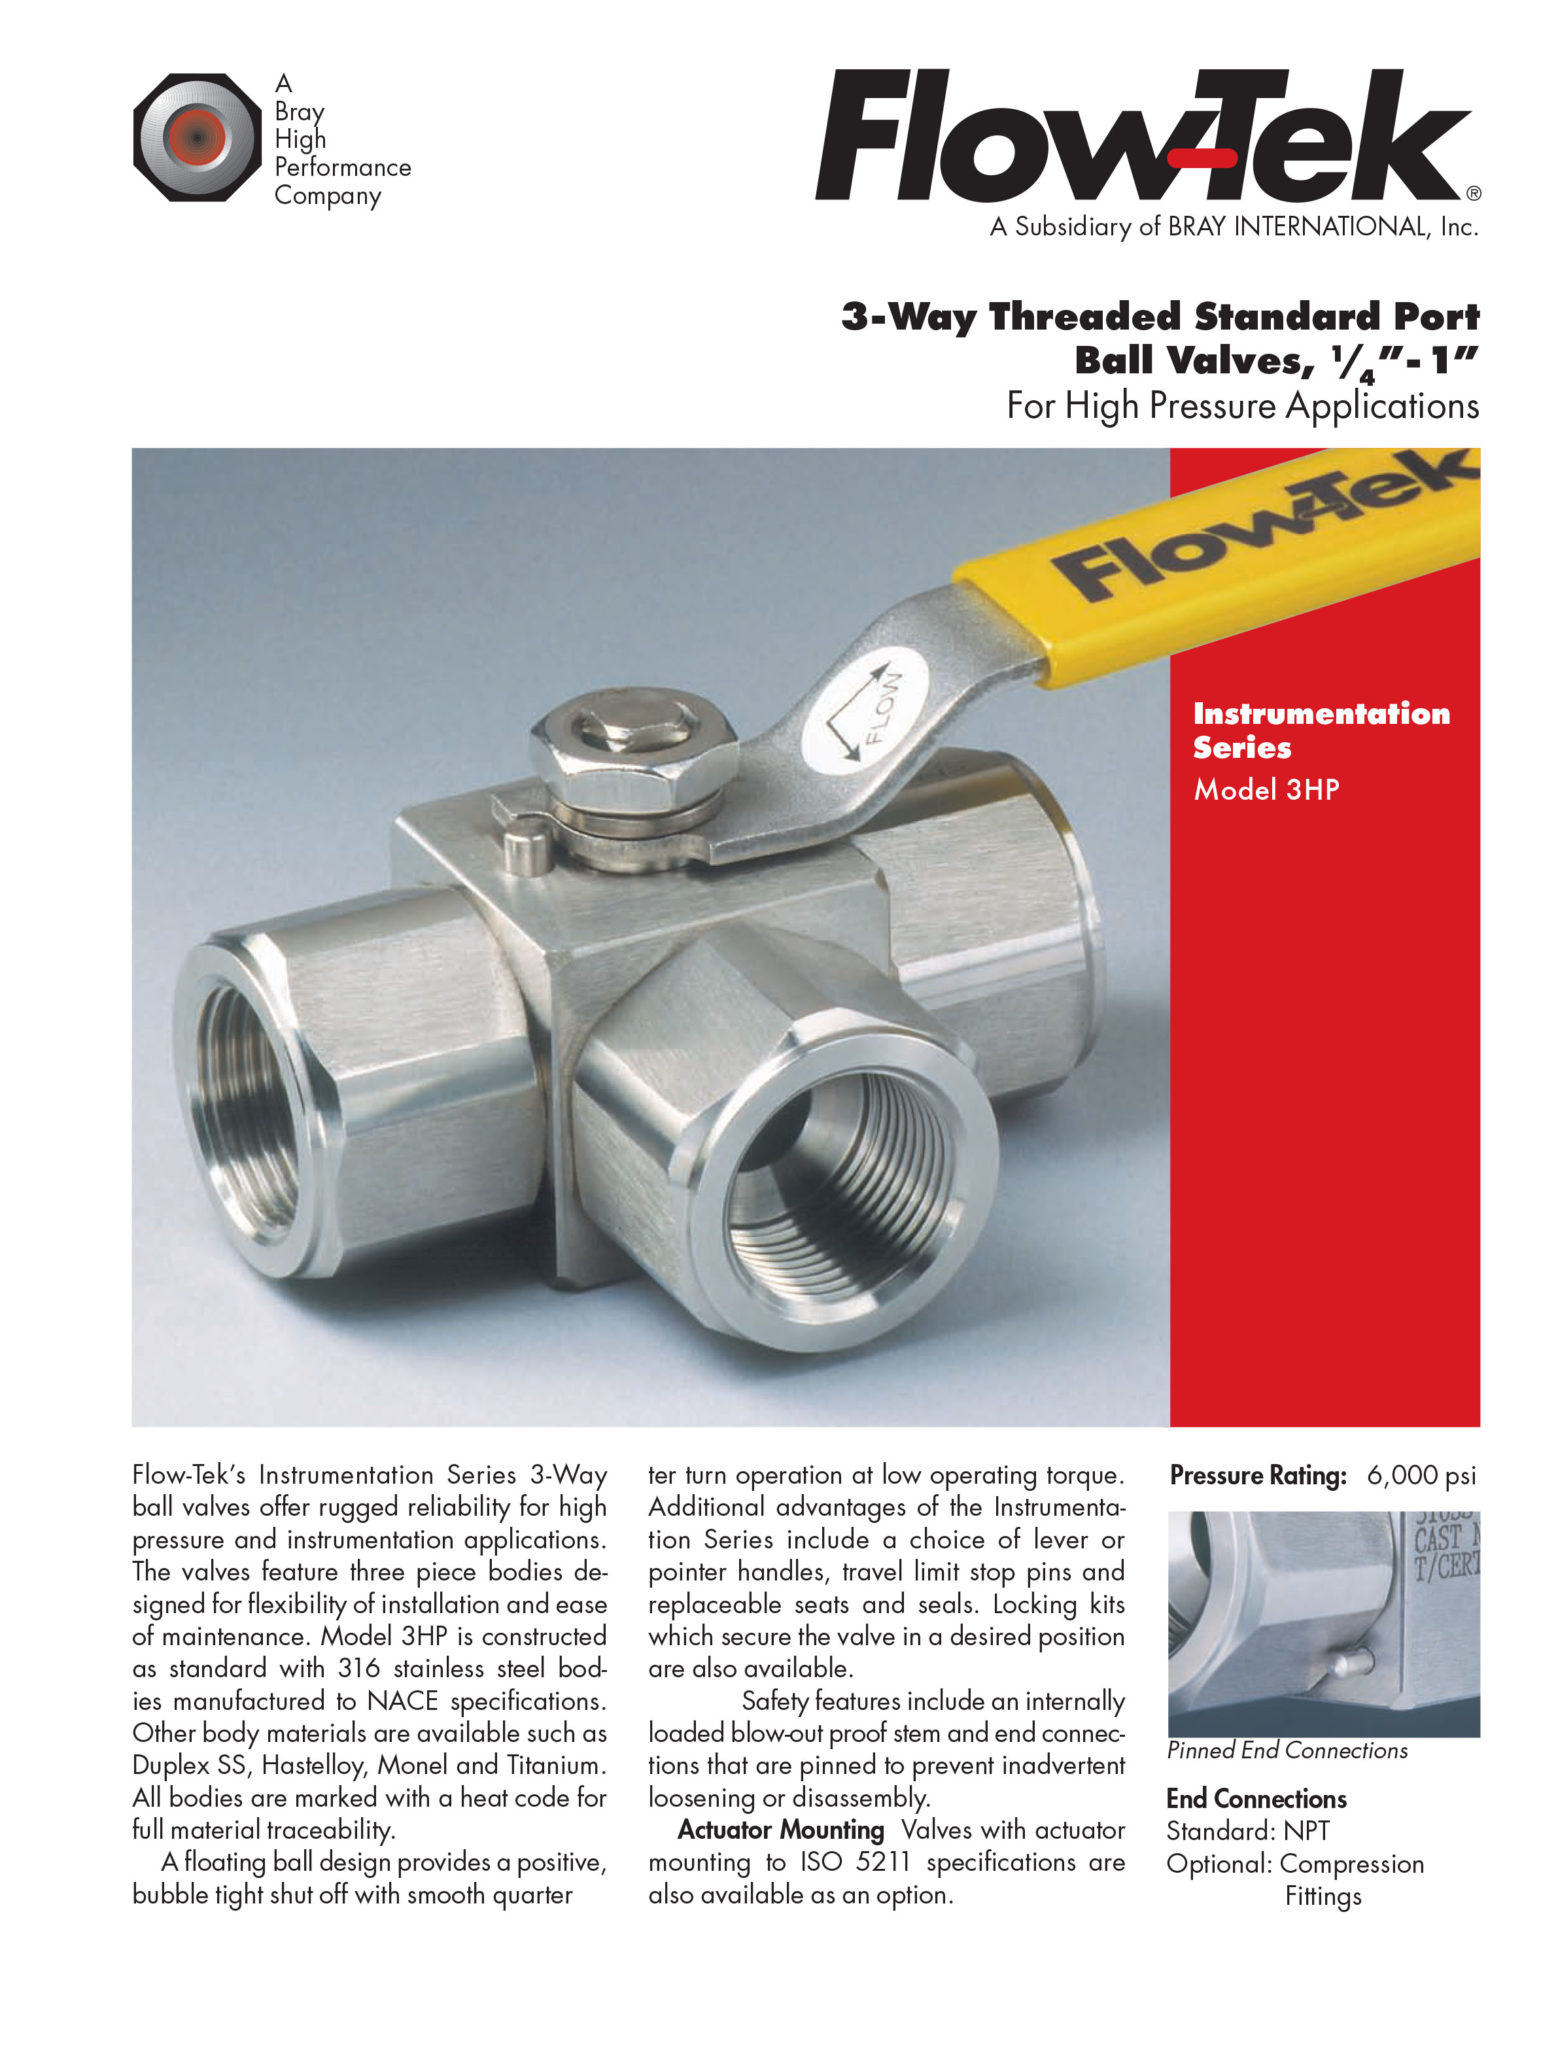 3-Way Threaded Standard Port